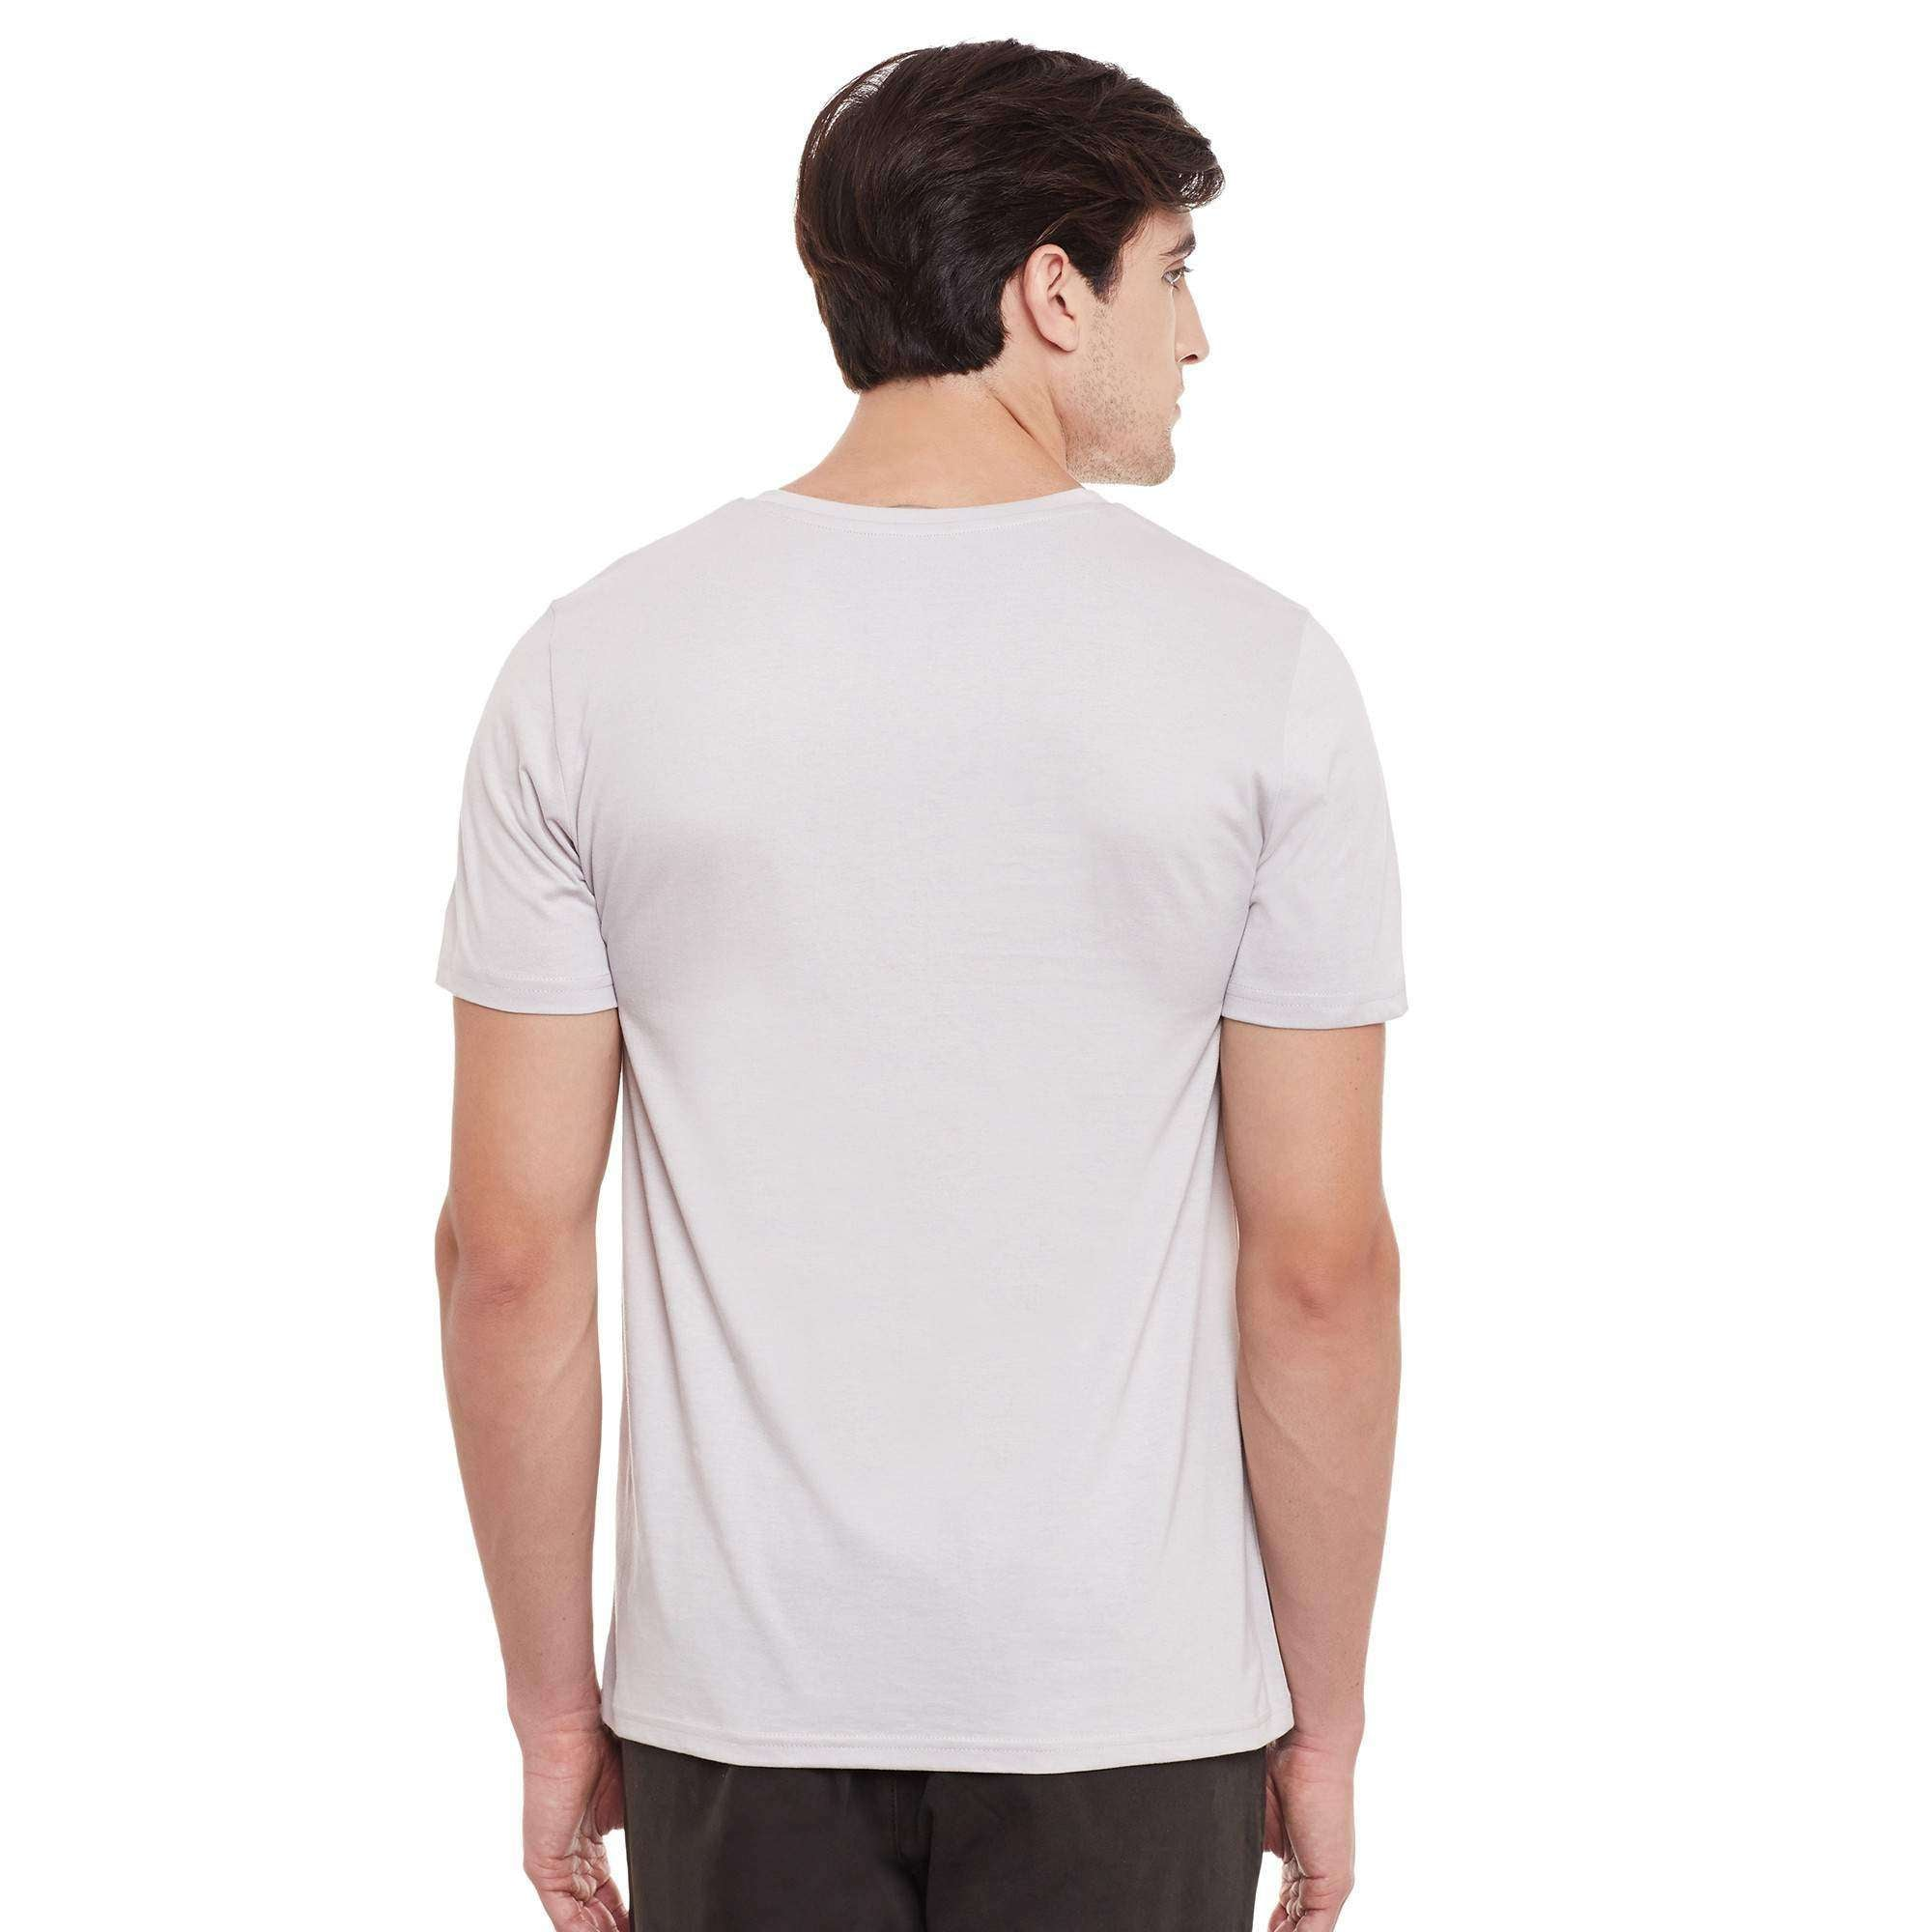 Atorse mens half sleeve t-shirt with v-neck and badges details